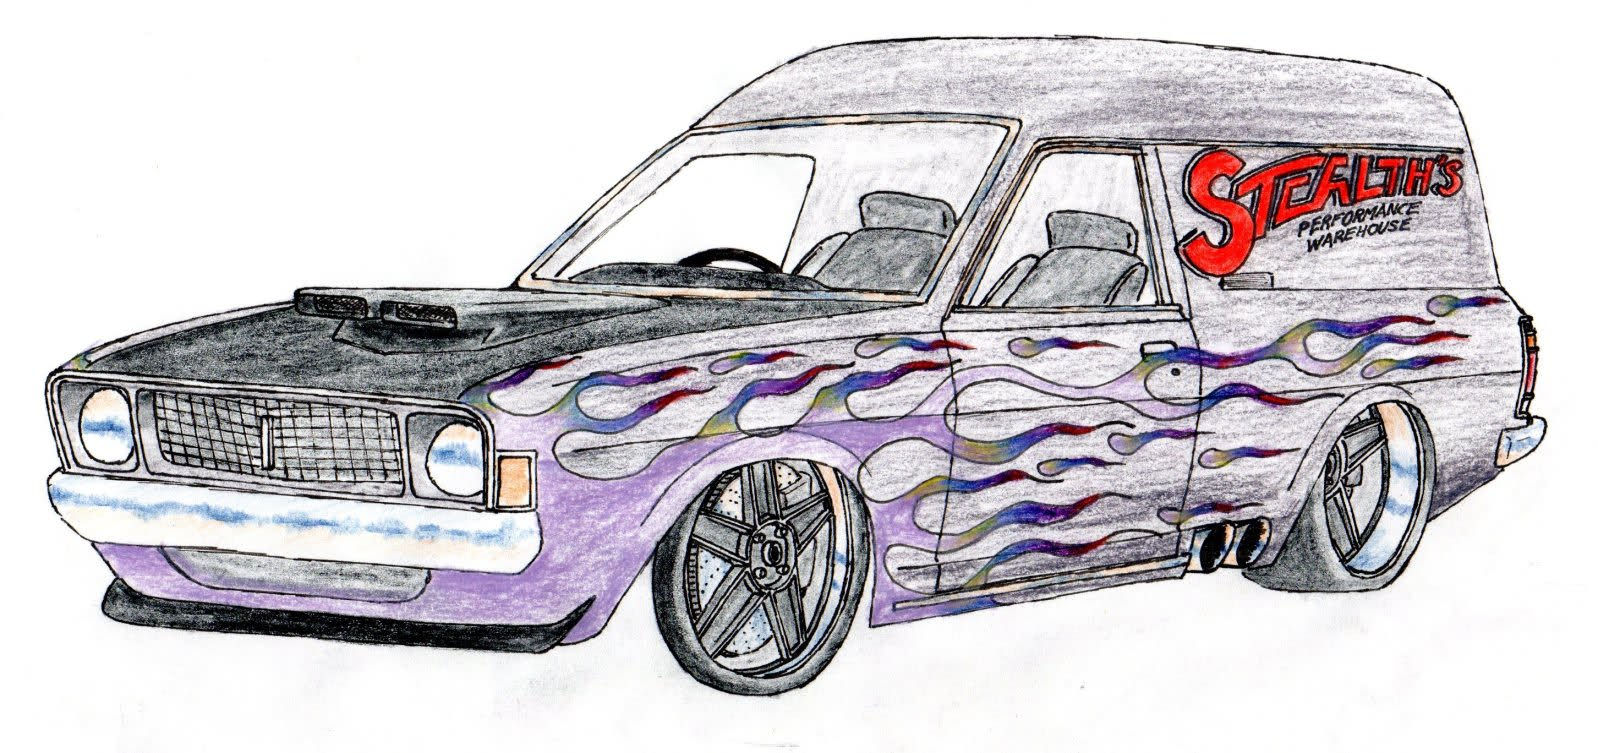 Drawn truck drag truck Truck with to Easy a